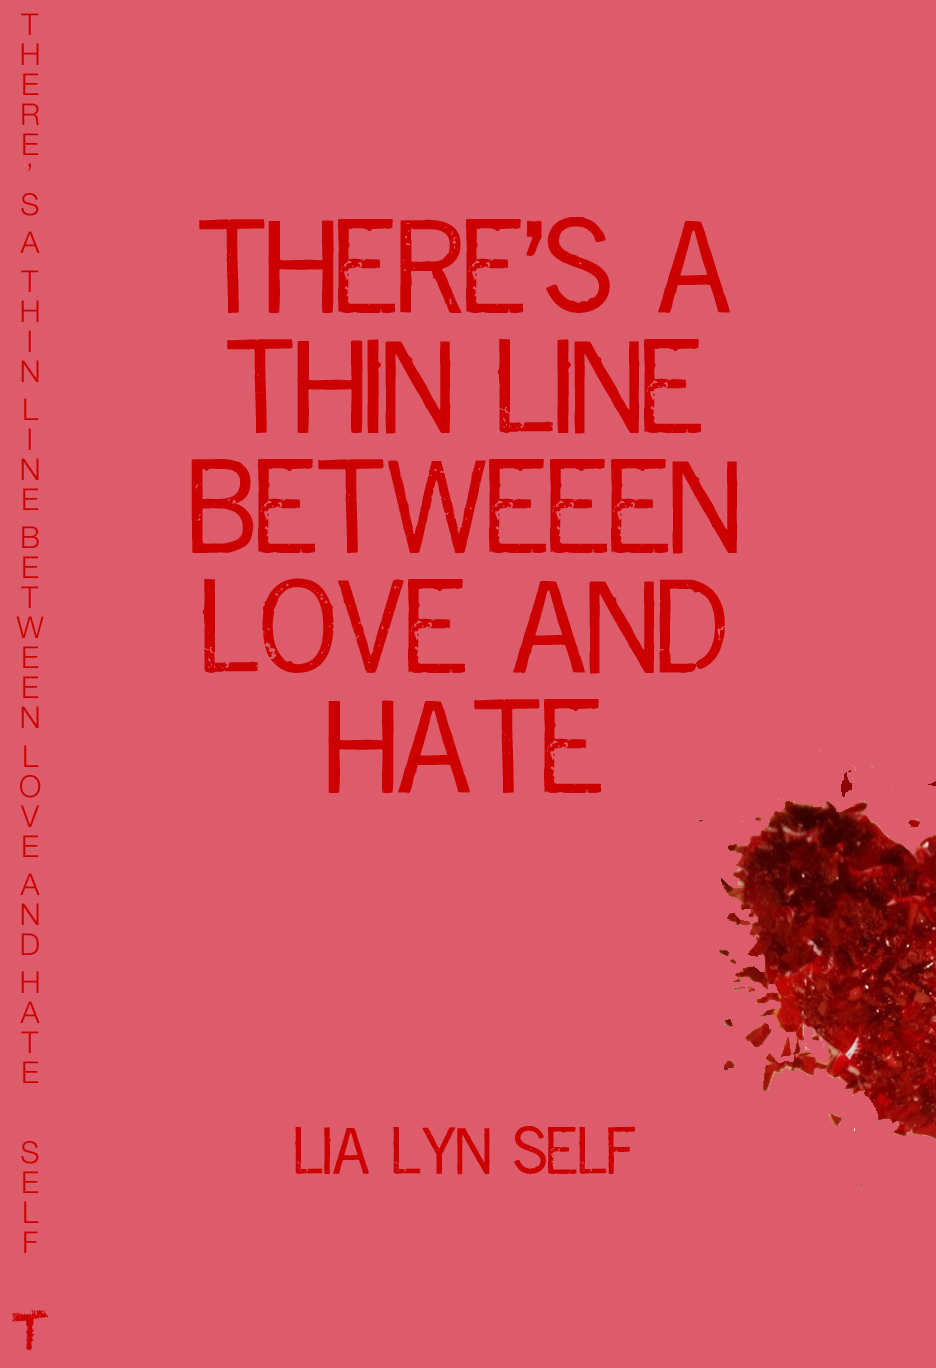 relationship between love and hate quotes hatred